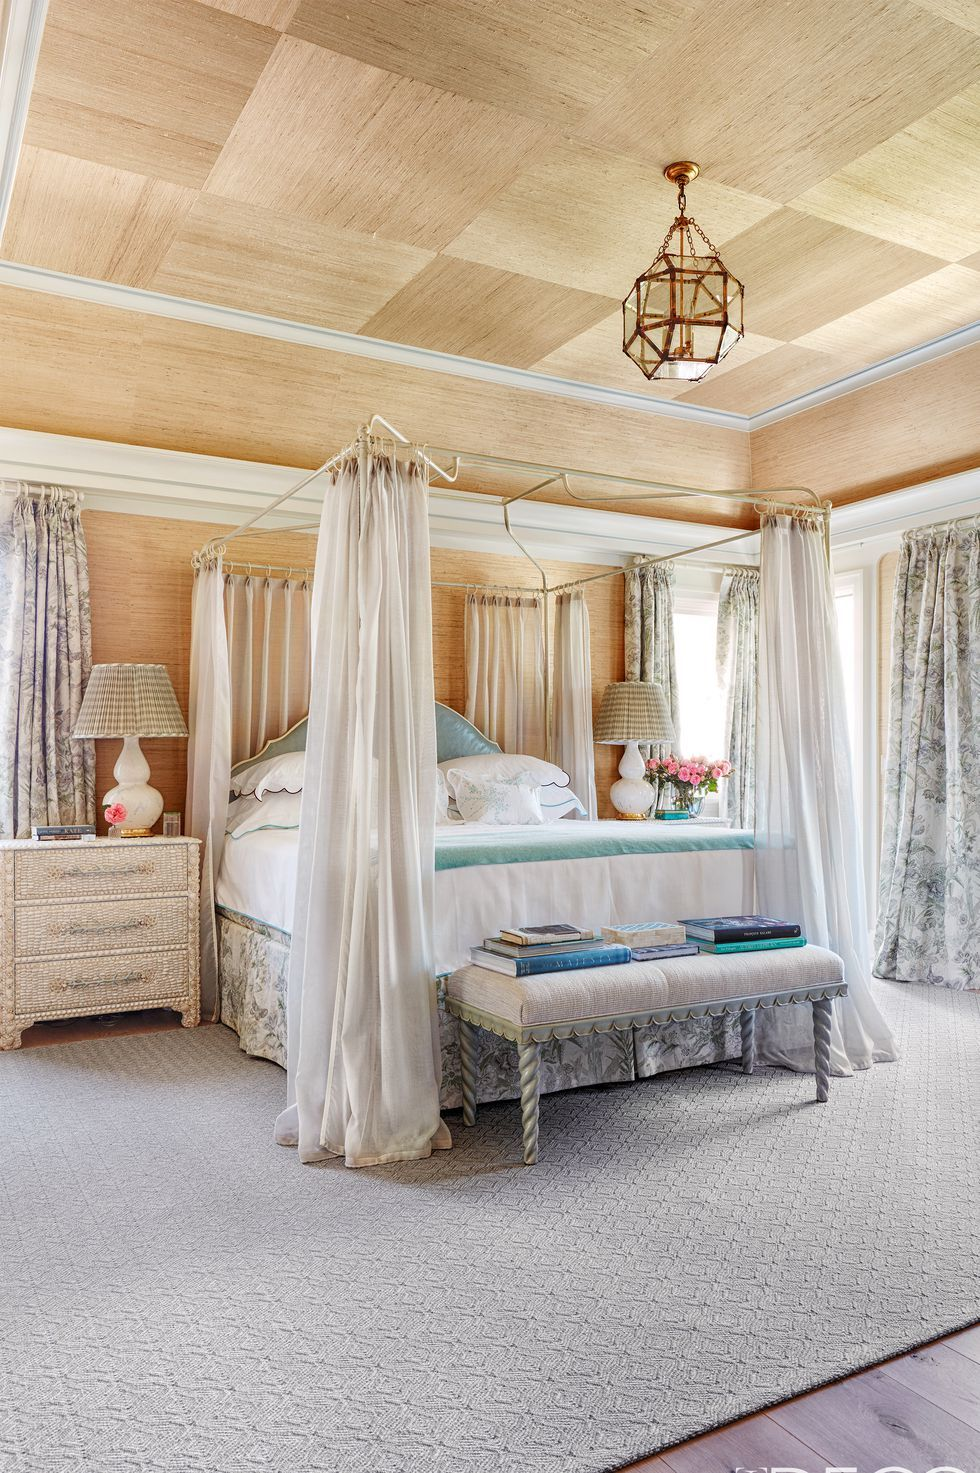 Bedrooms provide us with a good night's sleep and are our private space which needs good investment in a nice decor. 15 Bedrooms With Statement Ceilings Stunning Ceiling Designs